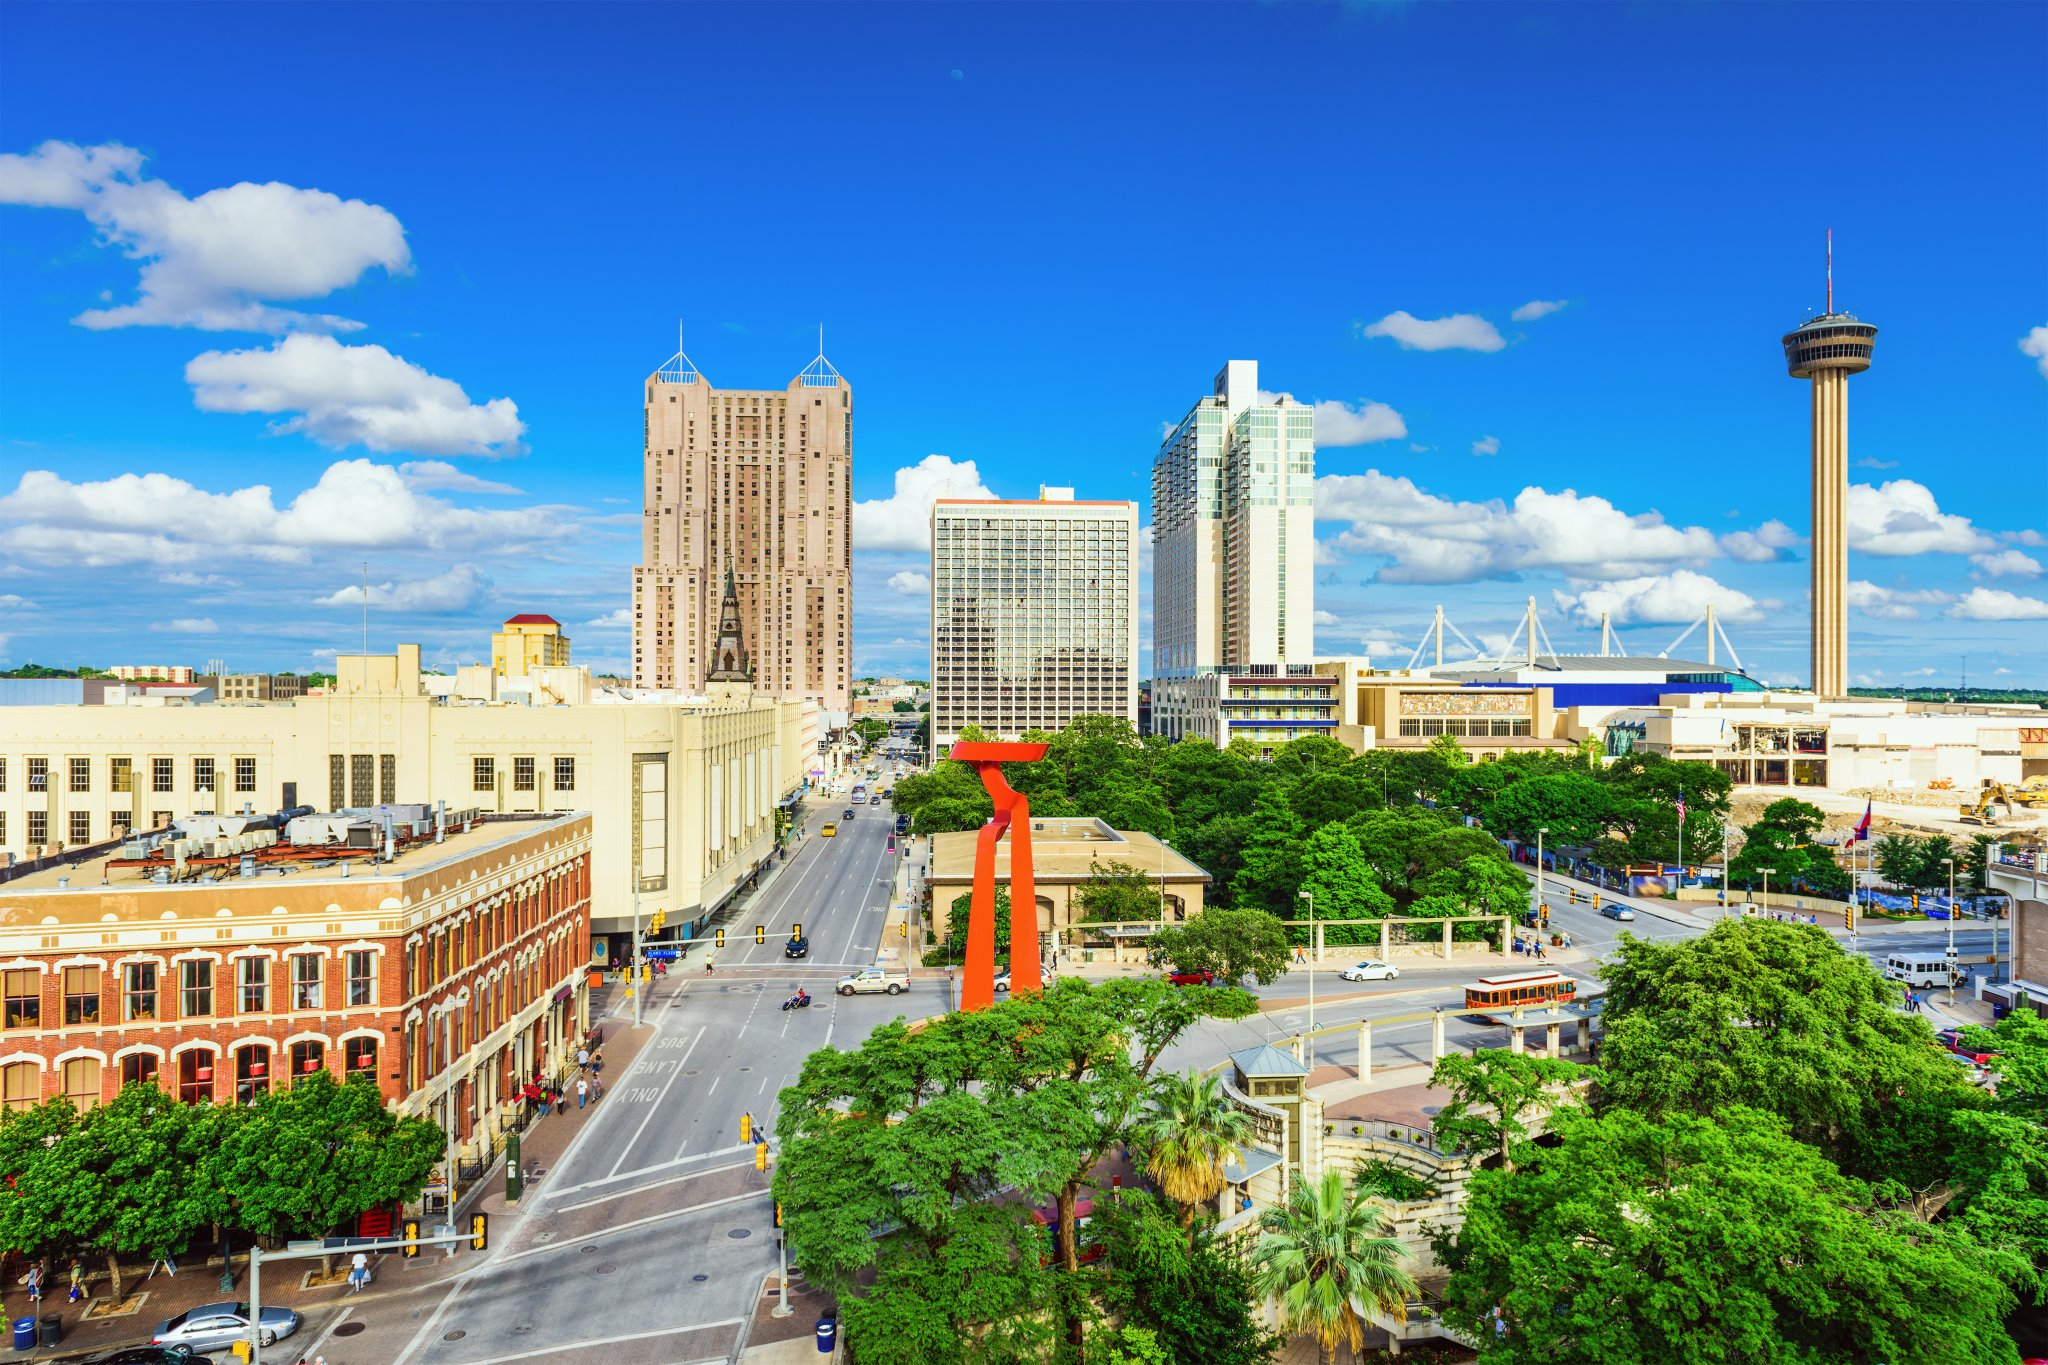 greater san antonio Find hotels in greater san antonio, us book online, pay at the hotel good rates and no reservation costs read hotel reviews from real guests.